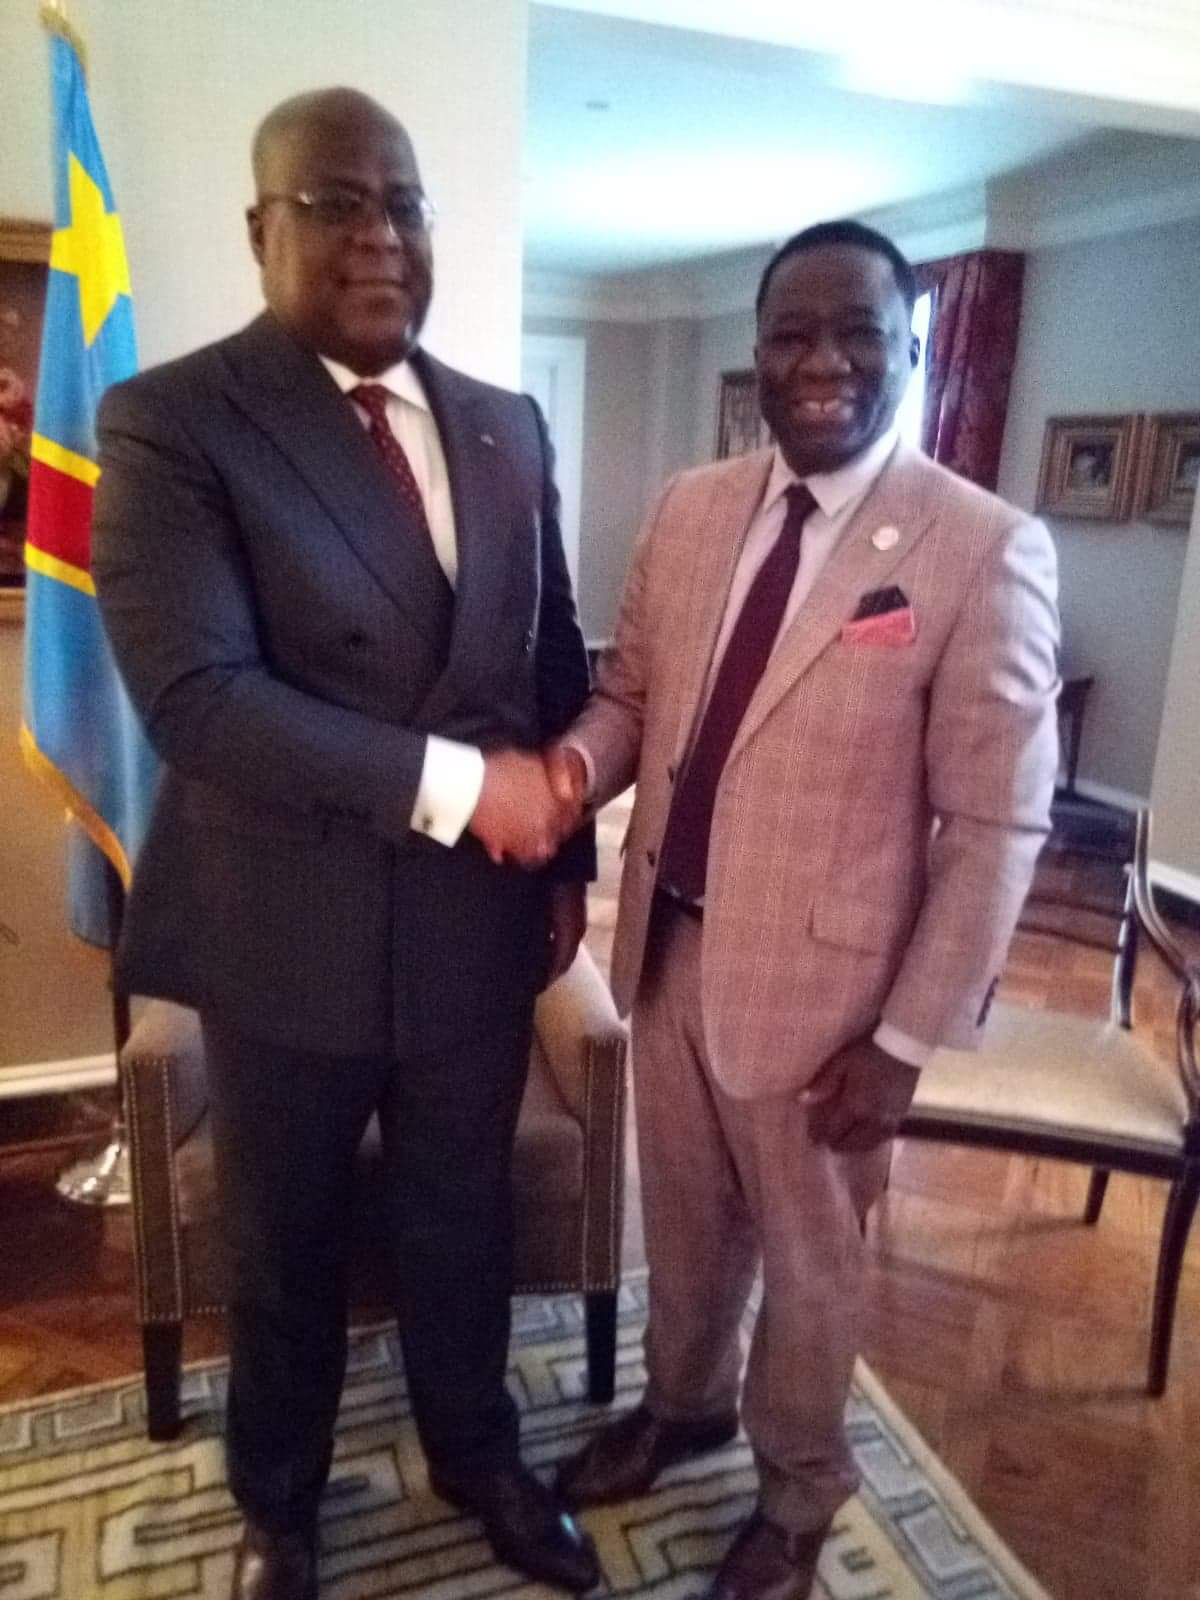 His Excellency President of DR Congo meeting IHRC Deputy Foreign Minister in the Fringes of the UNGA 2019